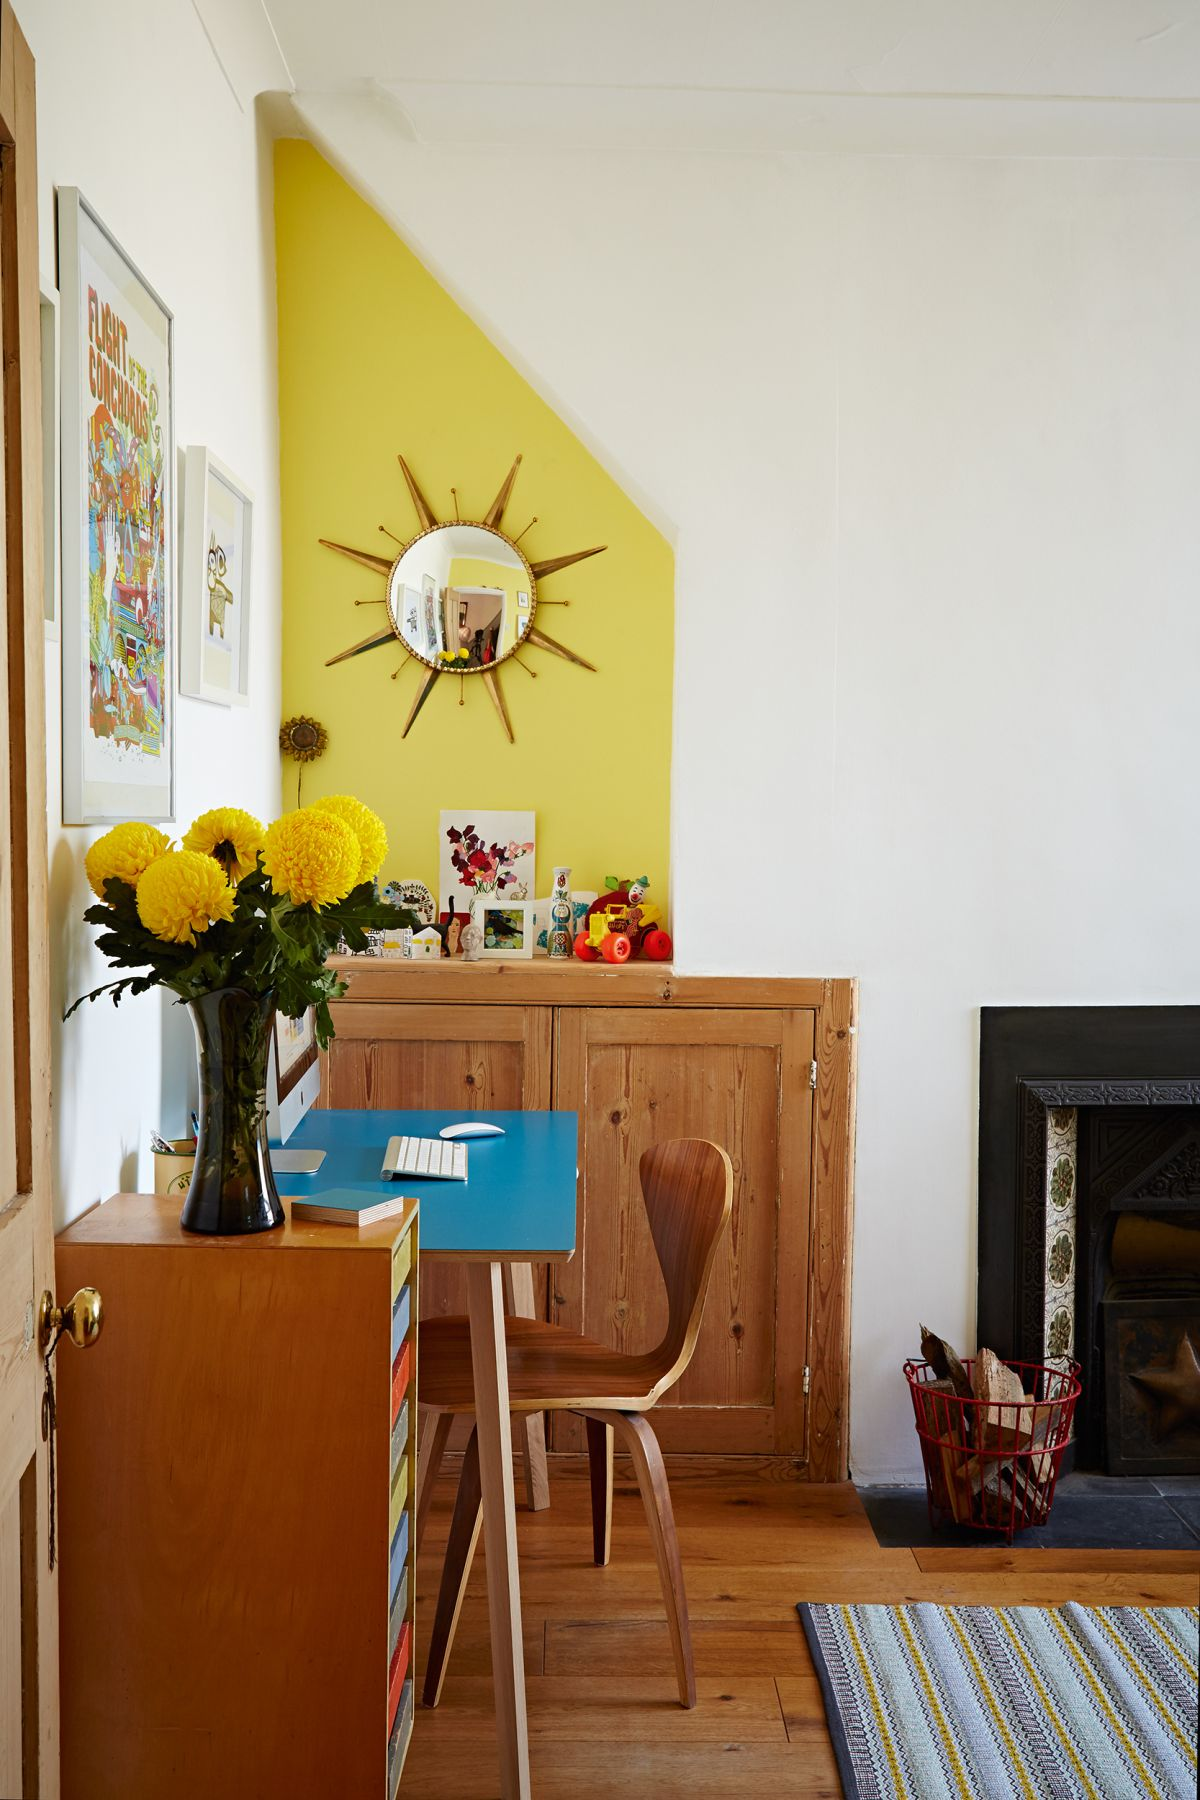 Living room paint ideas: 16 colour schemes to brighten ... on Room Painting id=39732